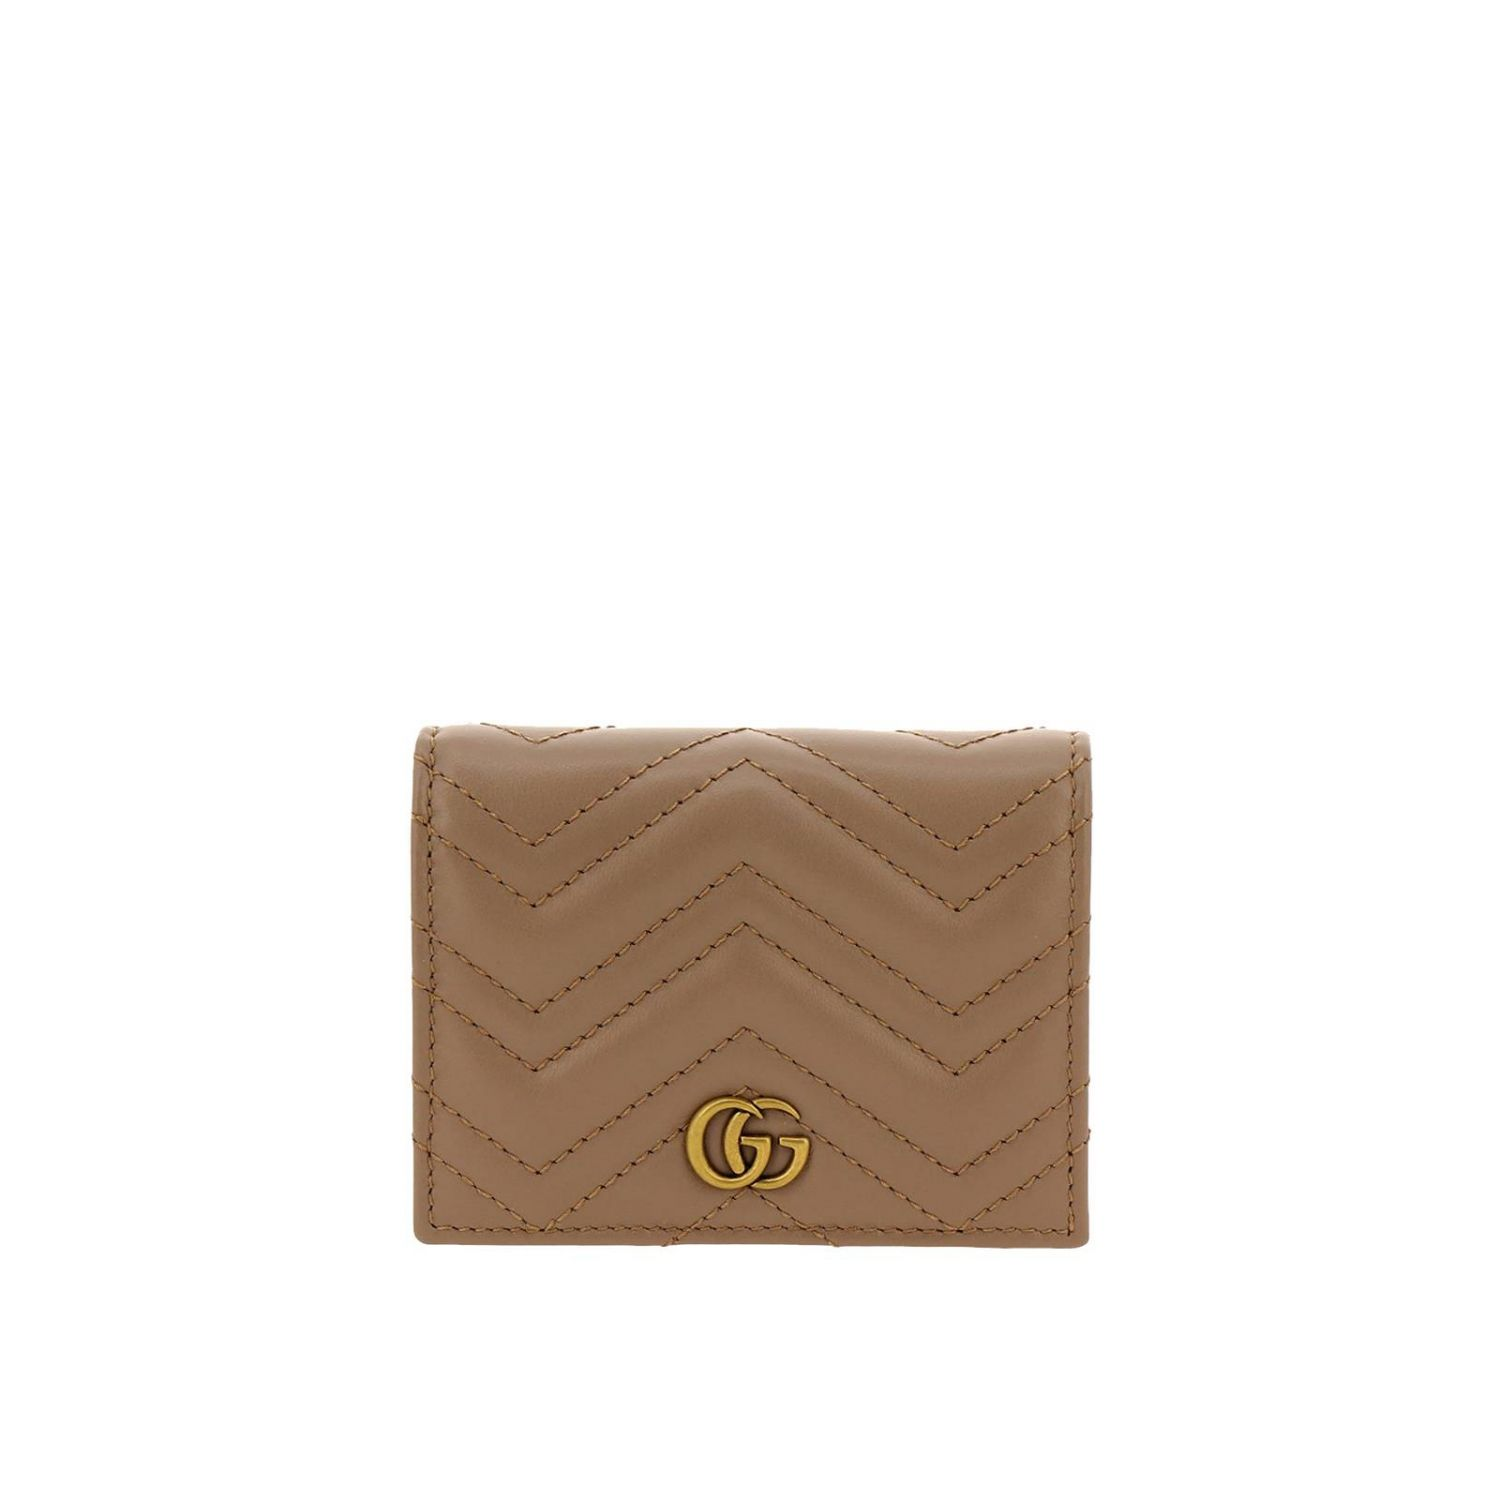 Wallet Gucci: GG Marmont quilted leather walletwith coin holder and Gucci monogram beige 1